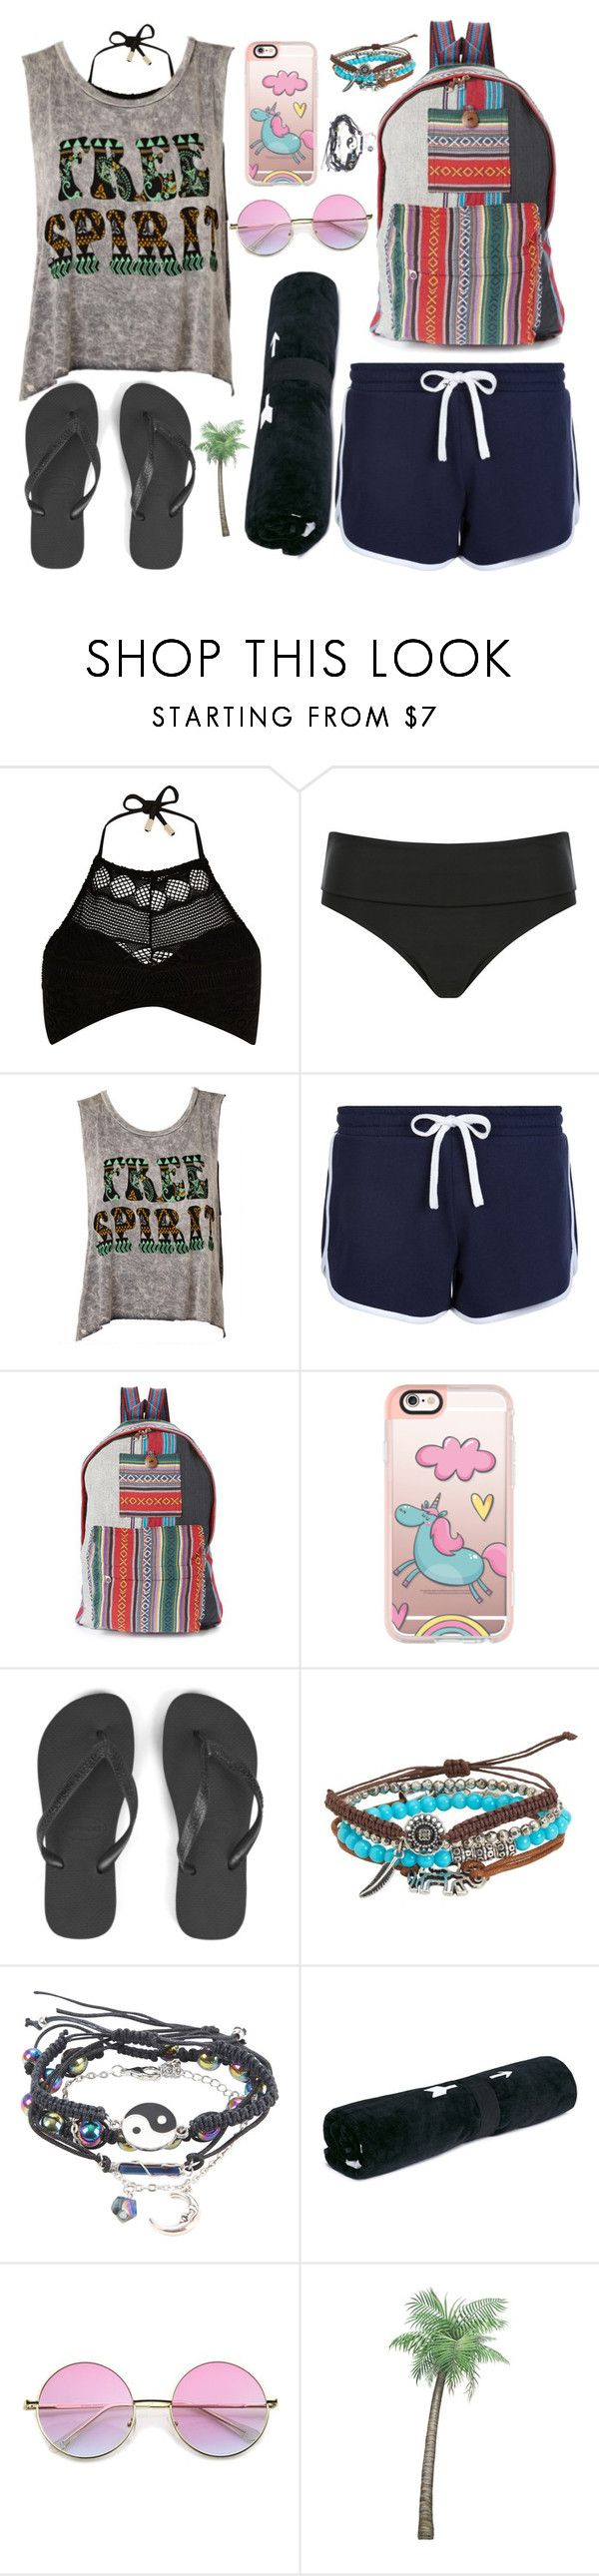 """""""✖️Beach Please✖️"""" by kirstymilli99 ❤ liked on Polyvore featuring River Island, M&Co, New Look, Rising International, Casetify, Havaianas, Aéropostale and The Upside"""